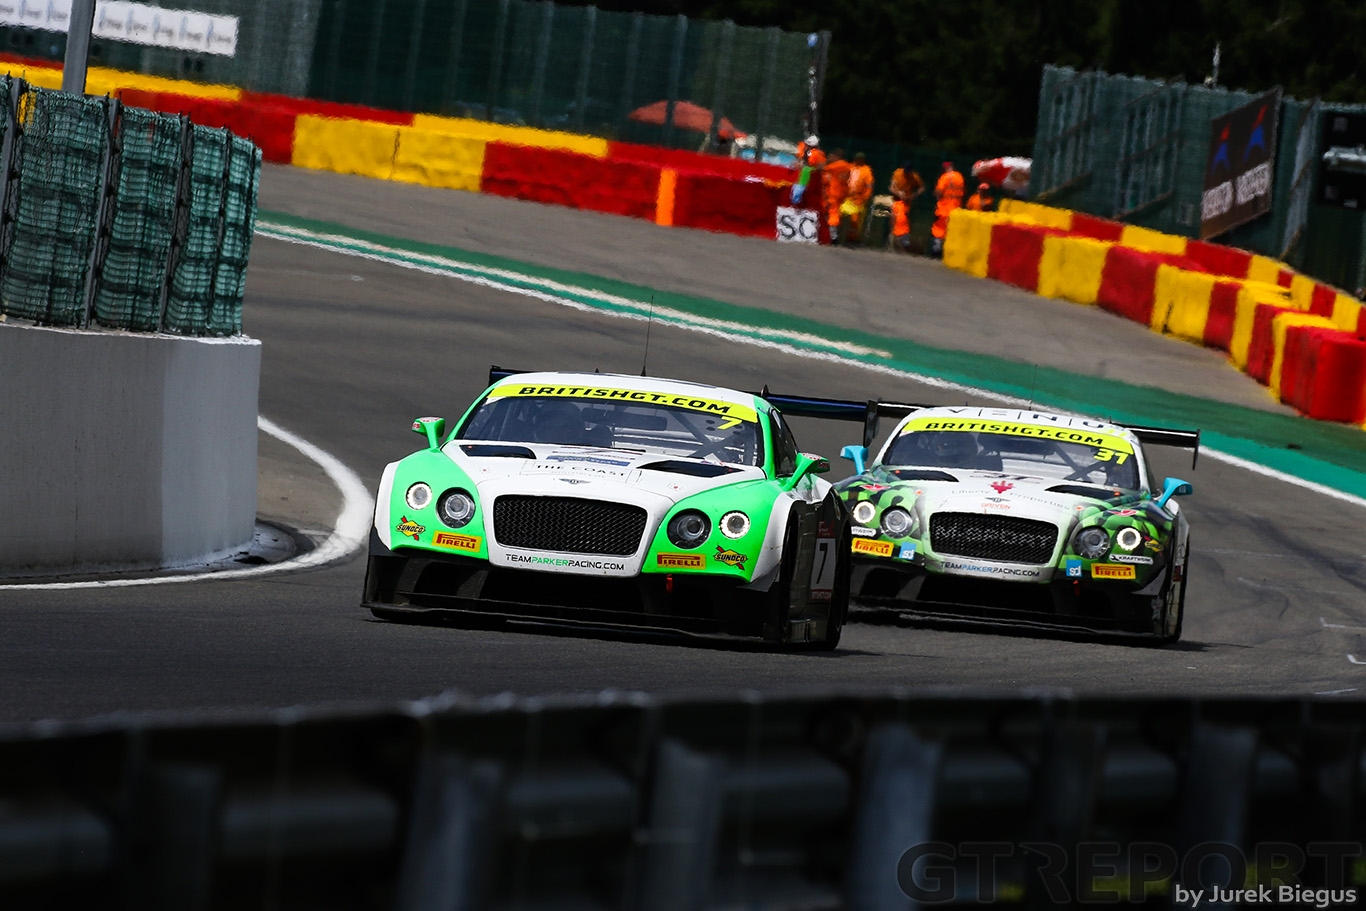 Team Parker Racing Bentley Continental GT3 with drivers Ian Loggie & Callum Macleod ahead of Team Parker Racing Bentley Continental GT3 with drivers Rick Parfitt & Seb Morris during the British GT Championship at Circuit de Spa-Francorchamps, Stavelot, Belgium on 8 July 2017. Photo by Jurek Biegus.